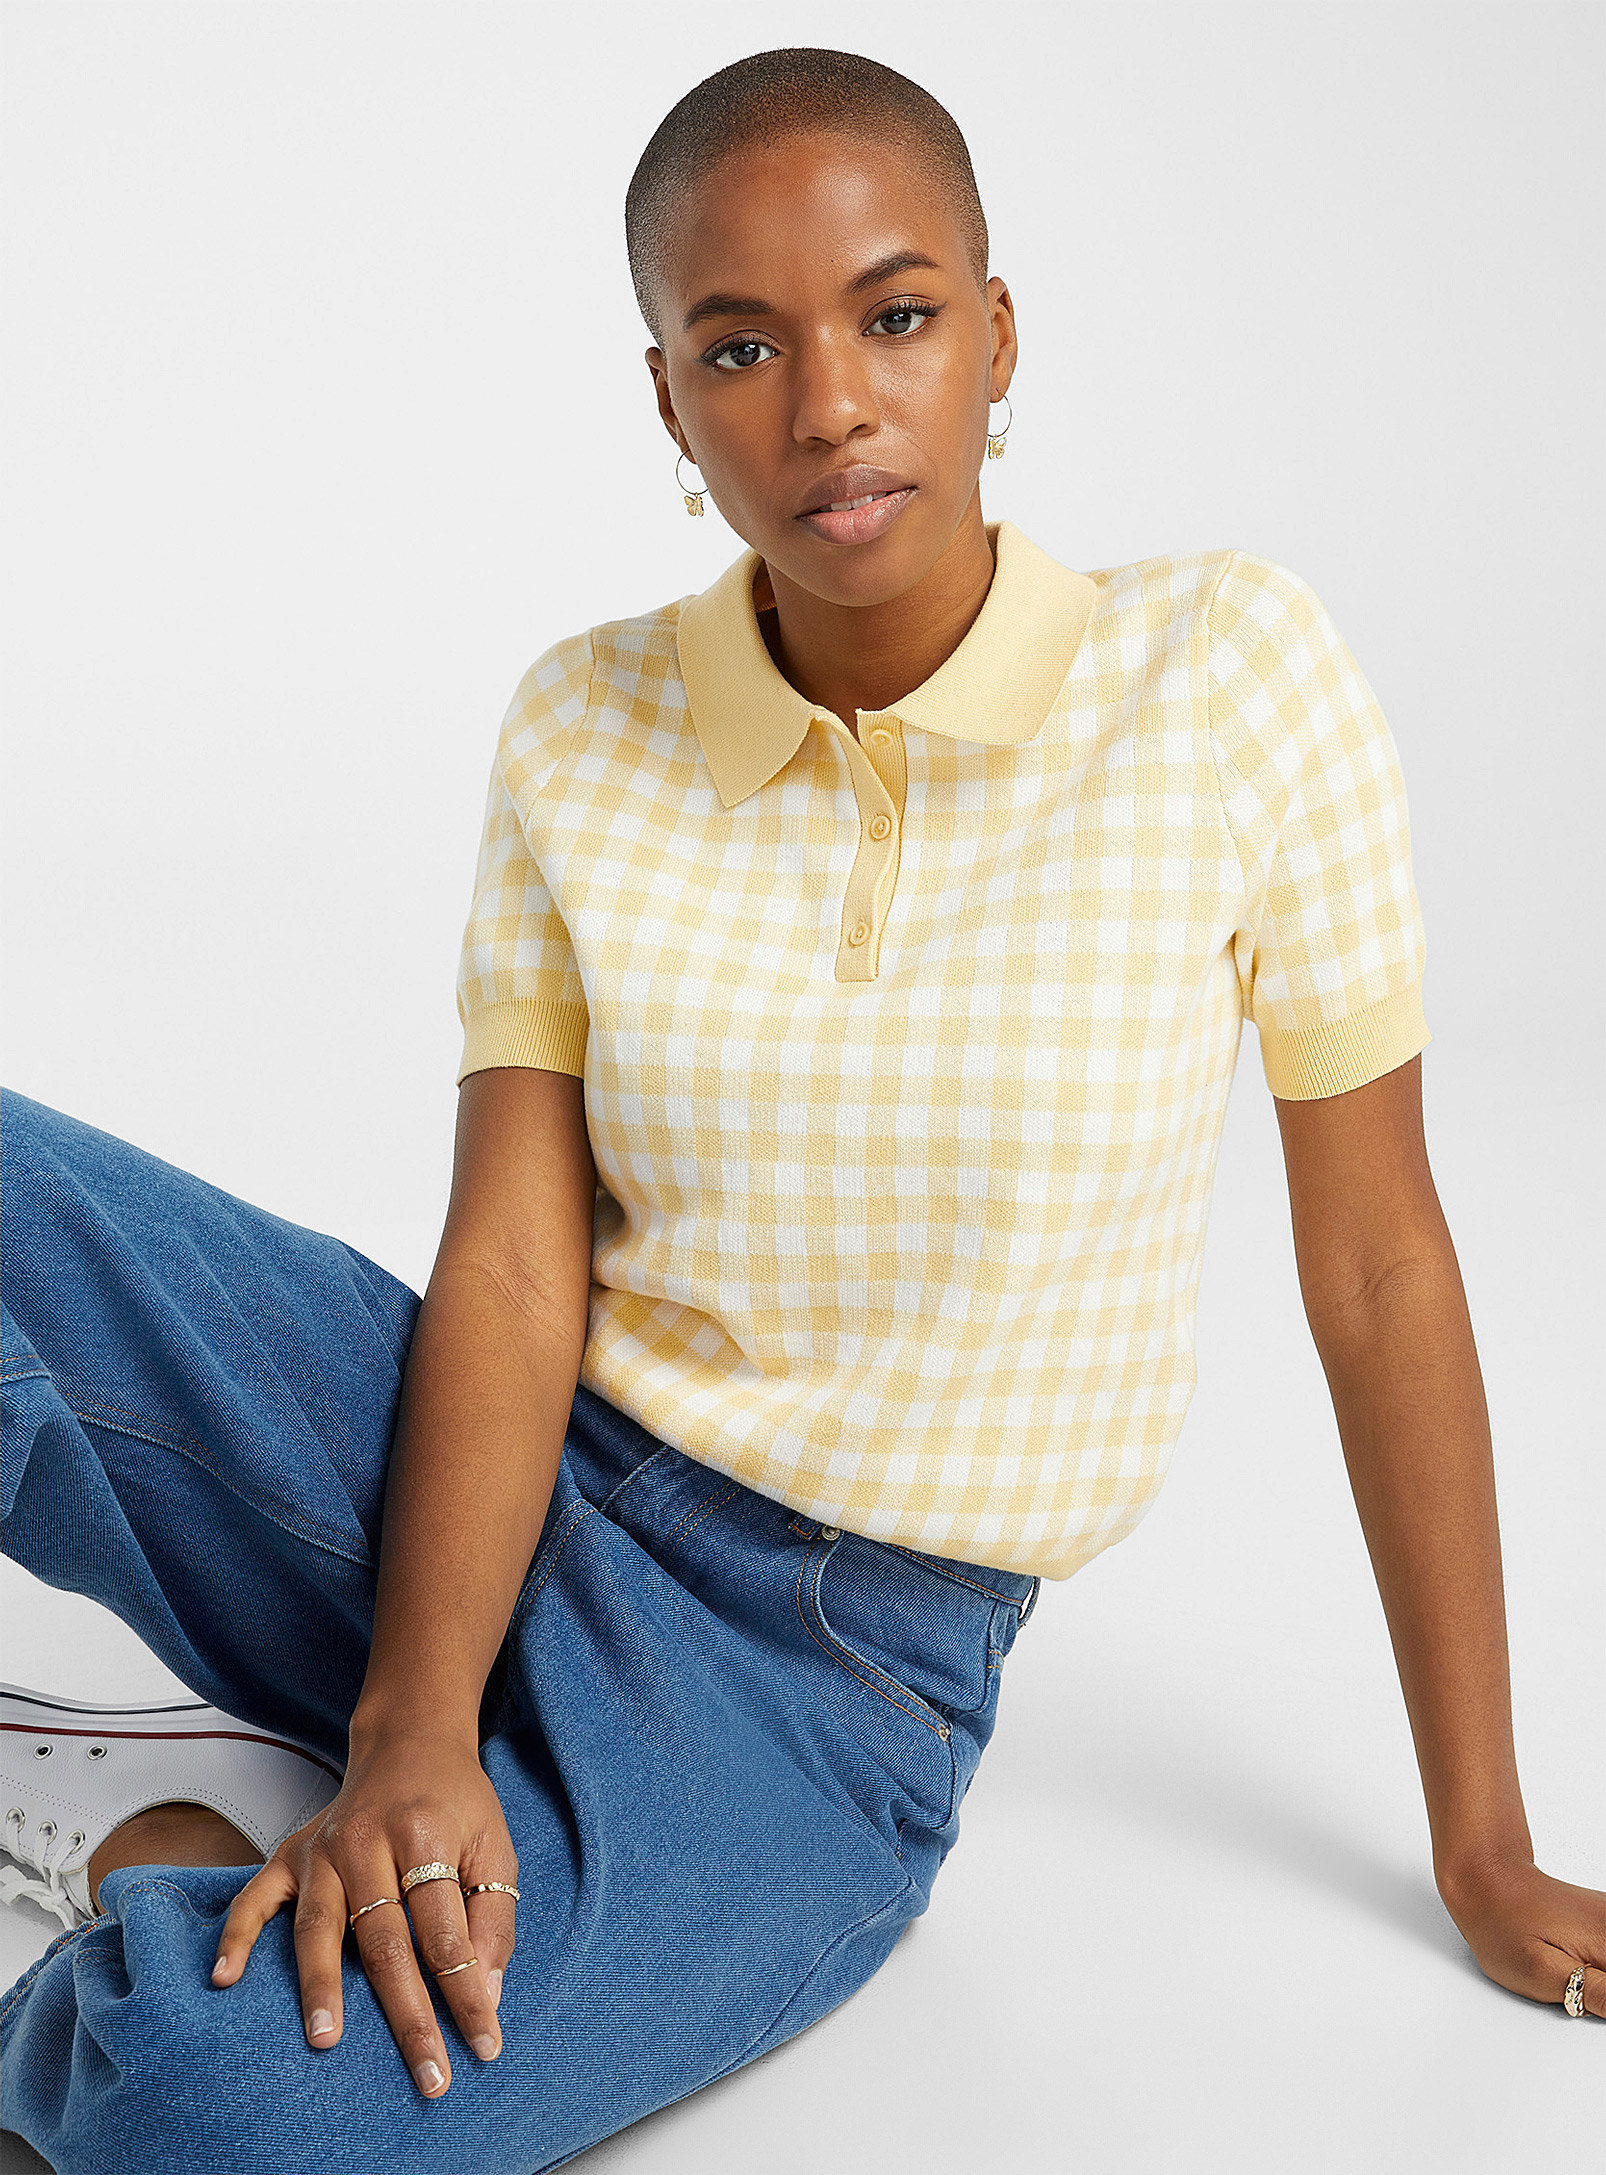 A person wearing a polo shirt with jeans